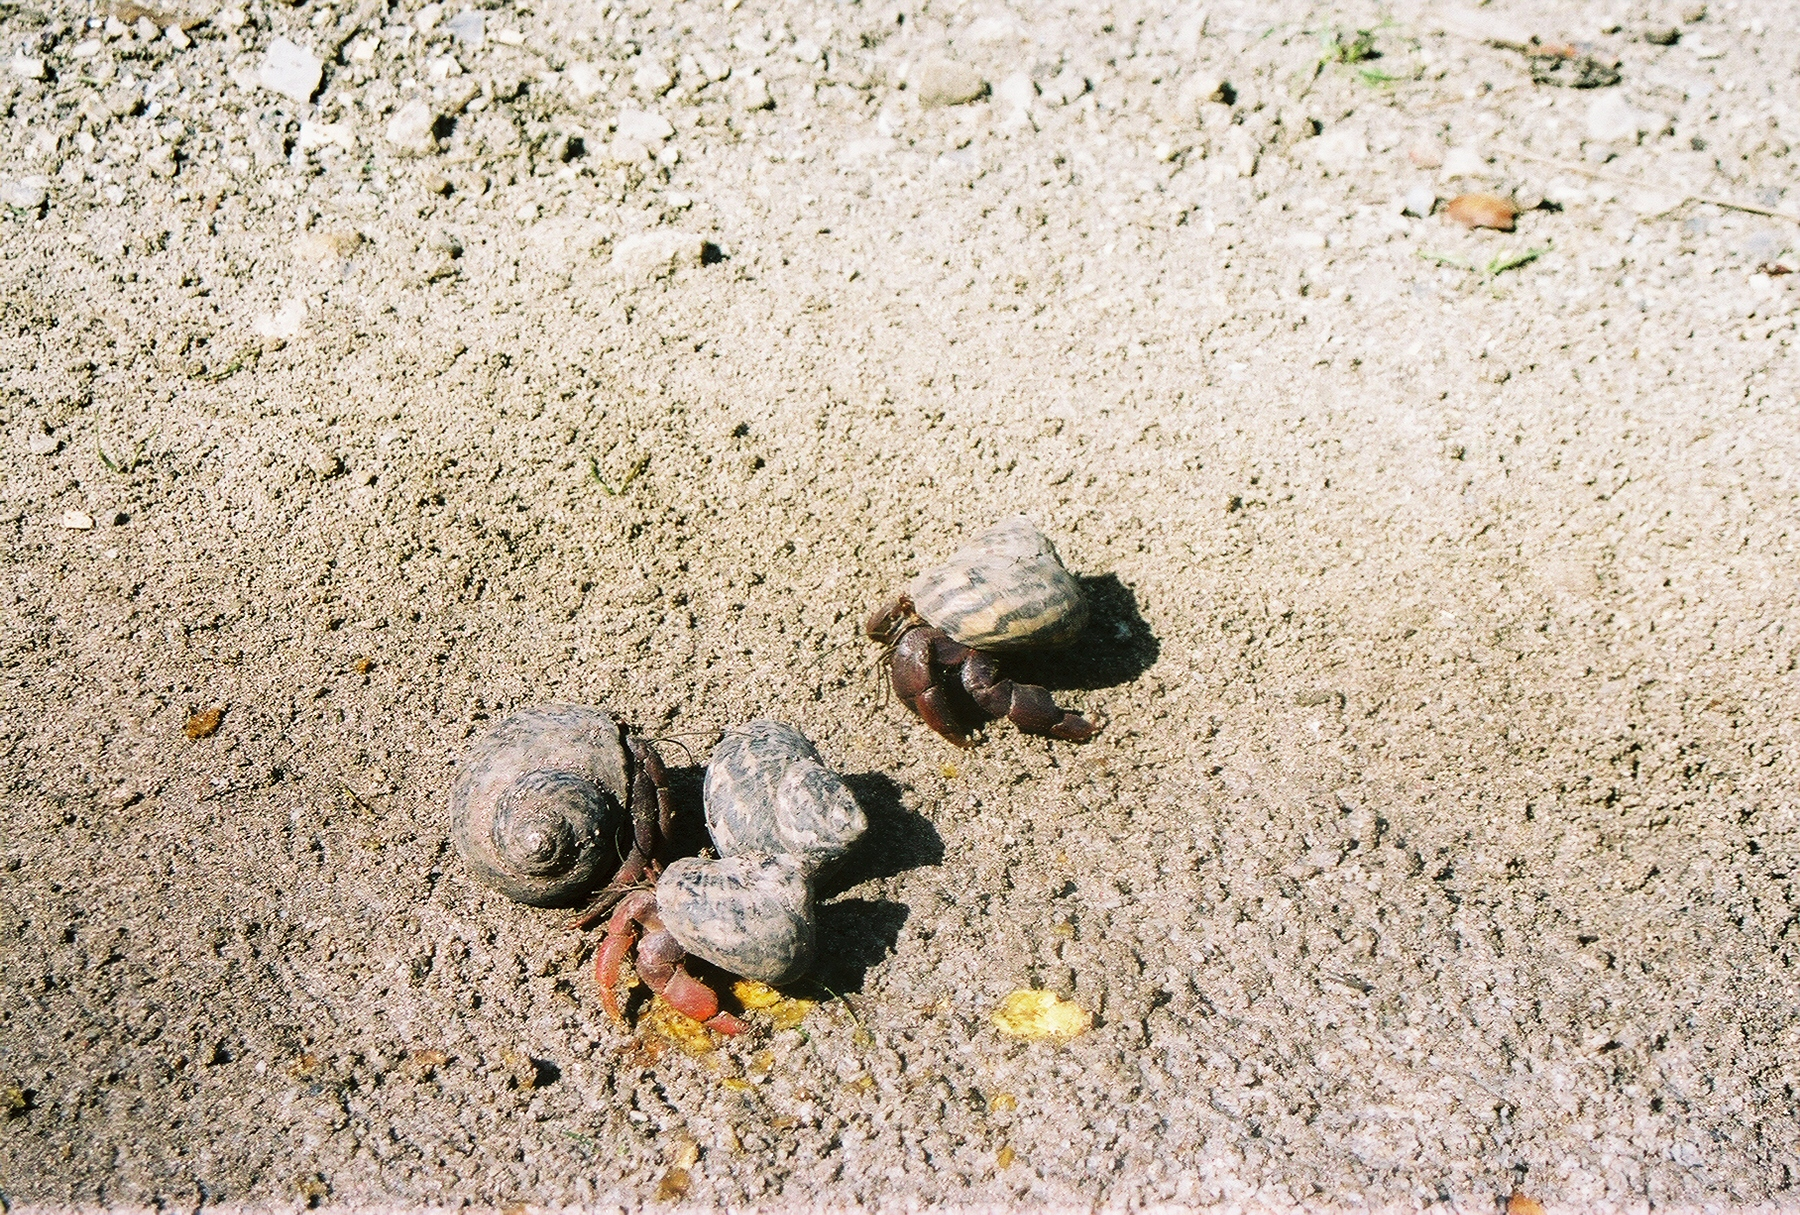 The hermit crabs are simply enormous. Photo: Pamy Rojas